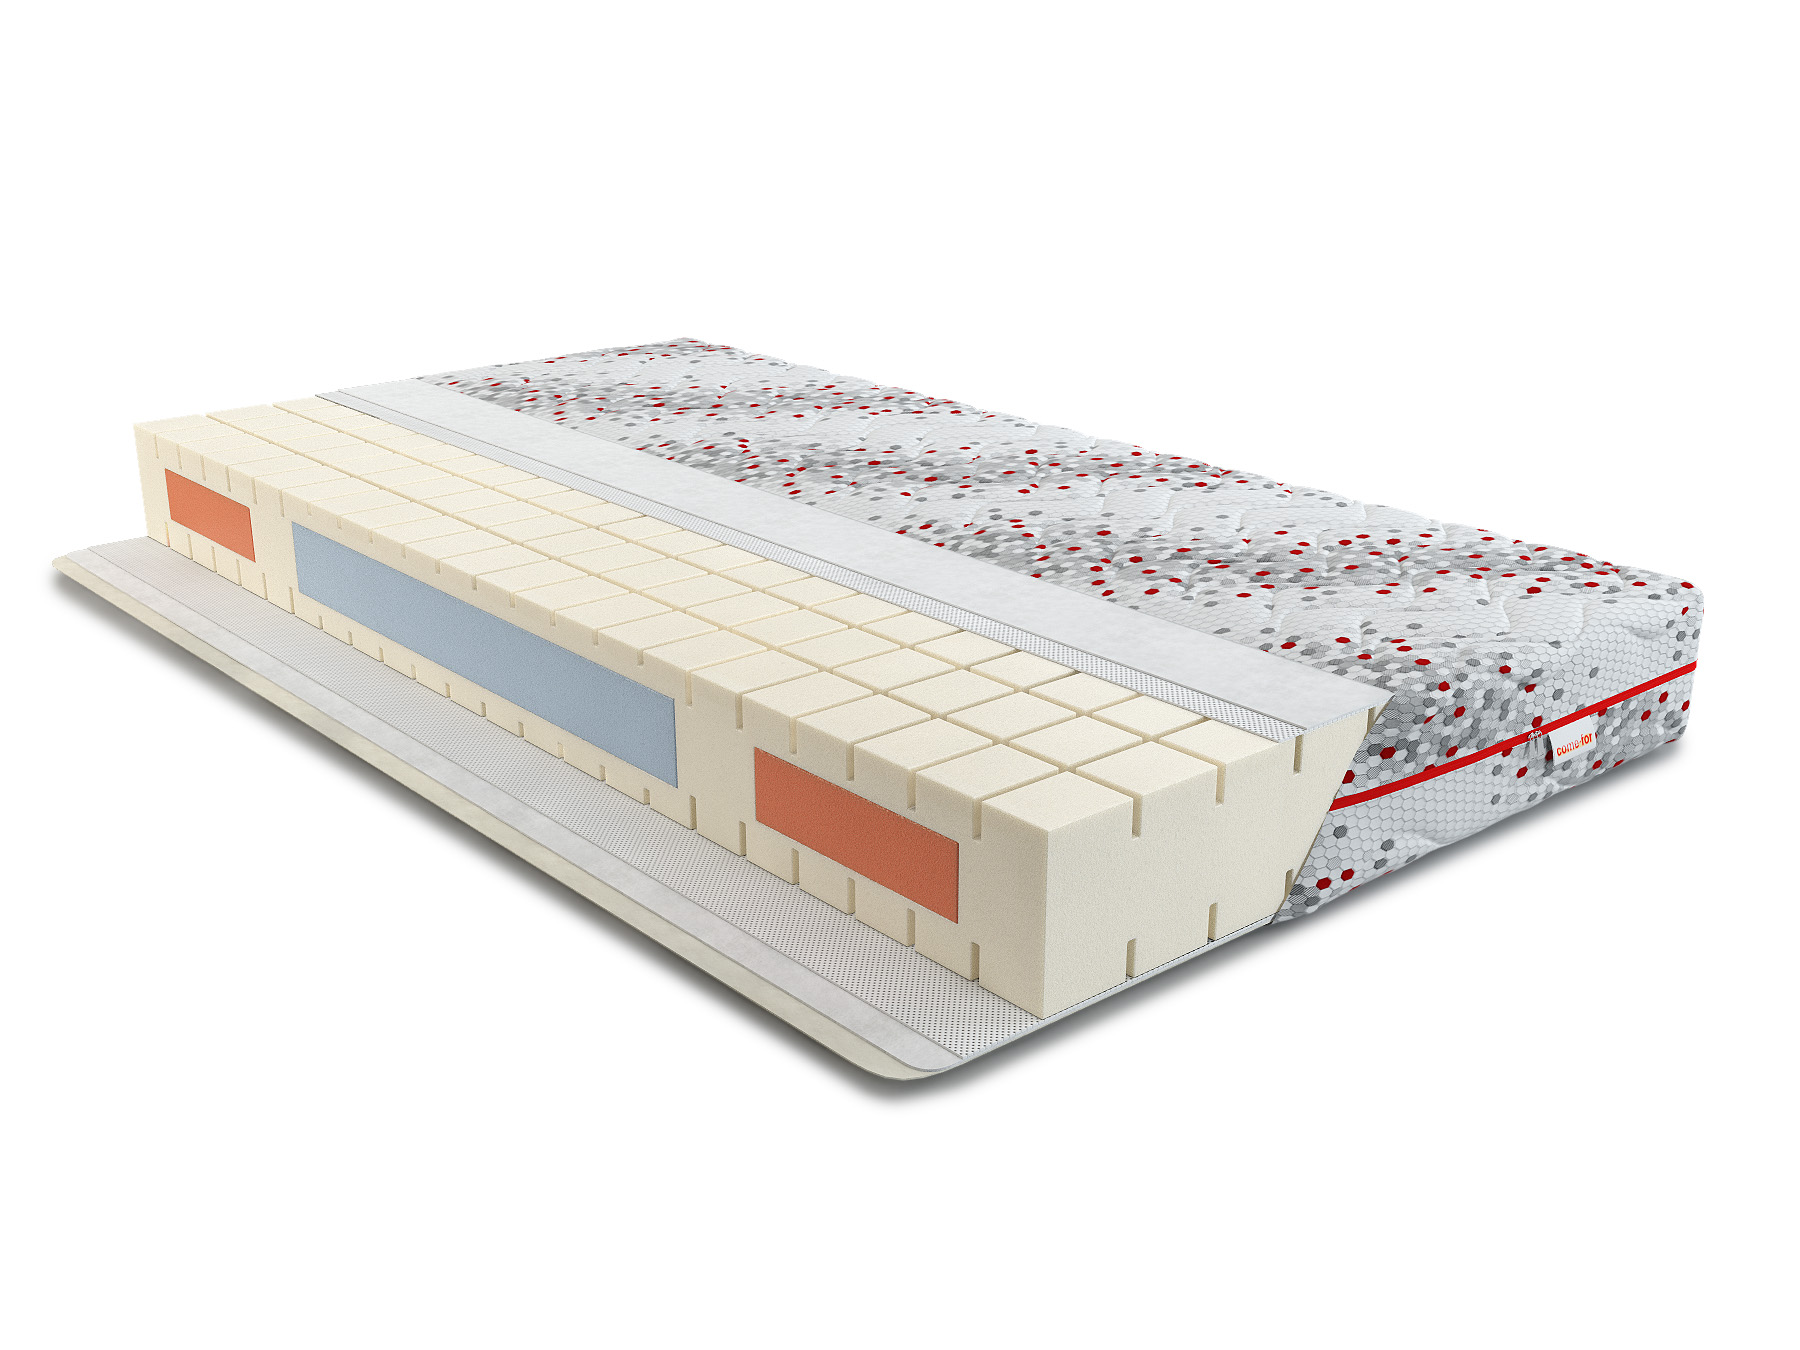 c689056bdd85 Rozetka.ua   Матрас Come-for Sleep Innovation SensoFlex 180х200 ...